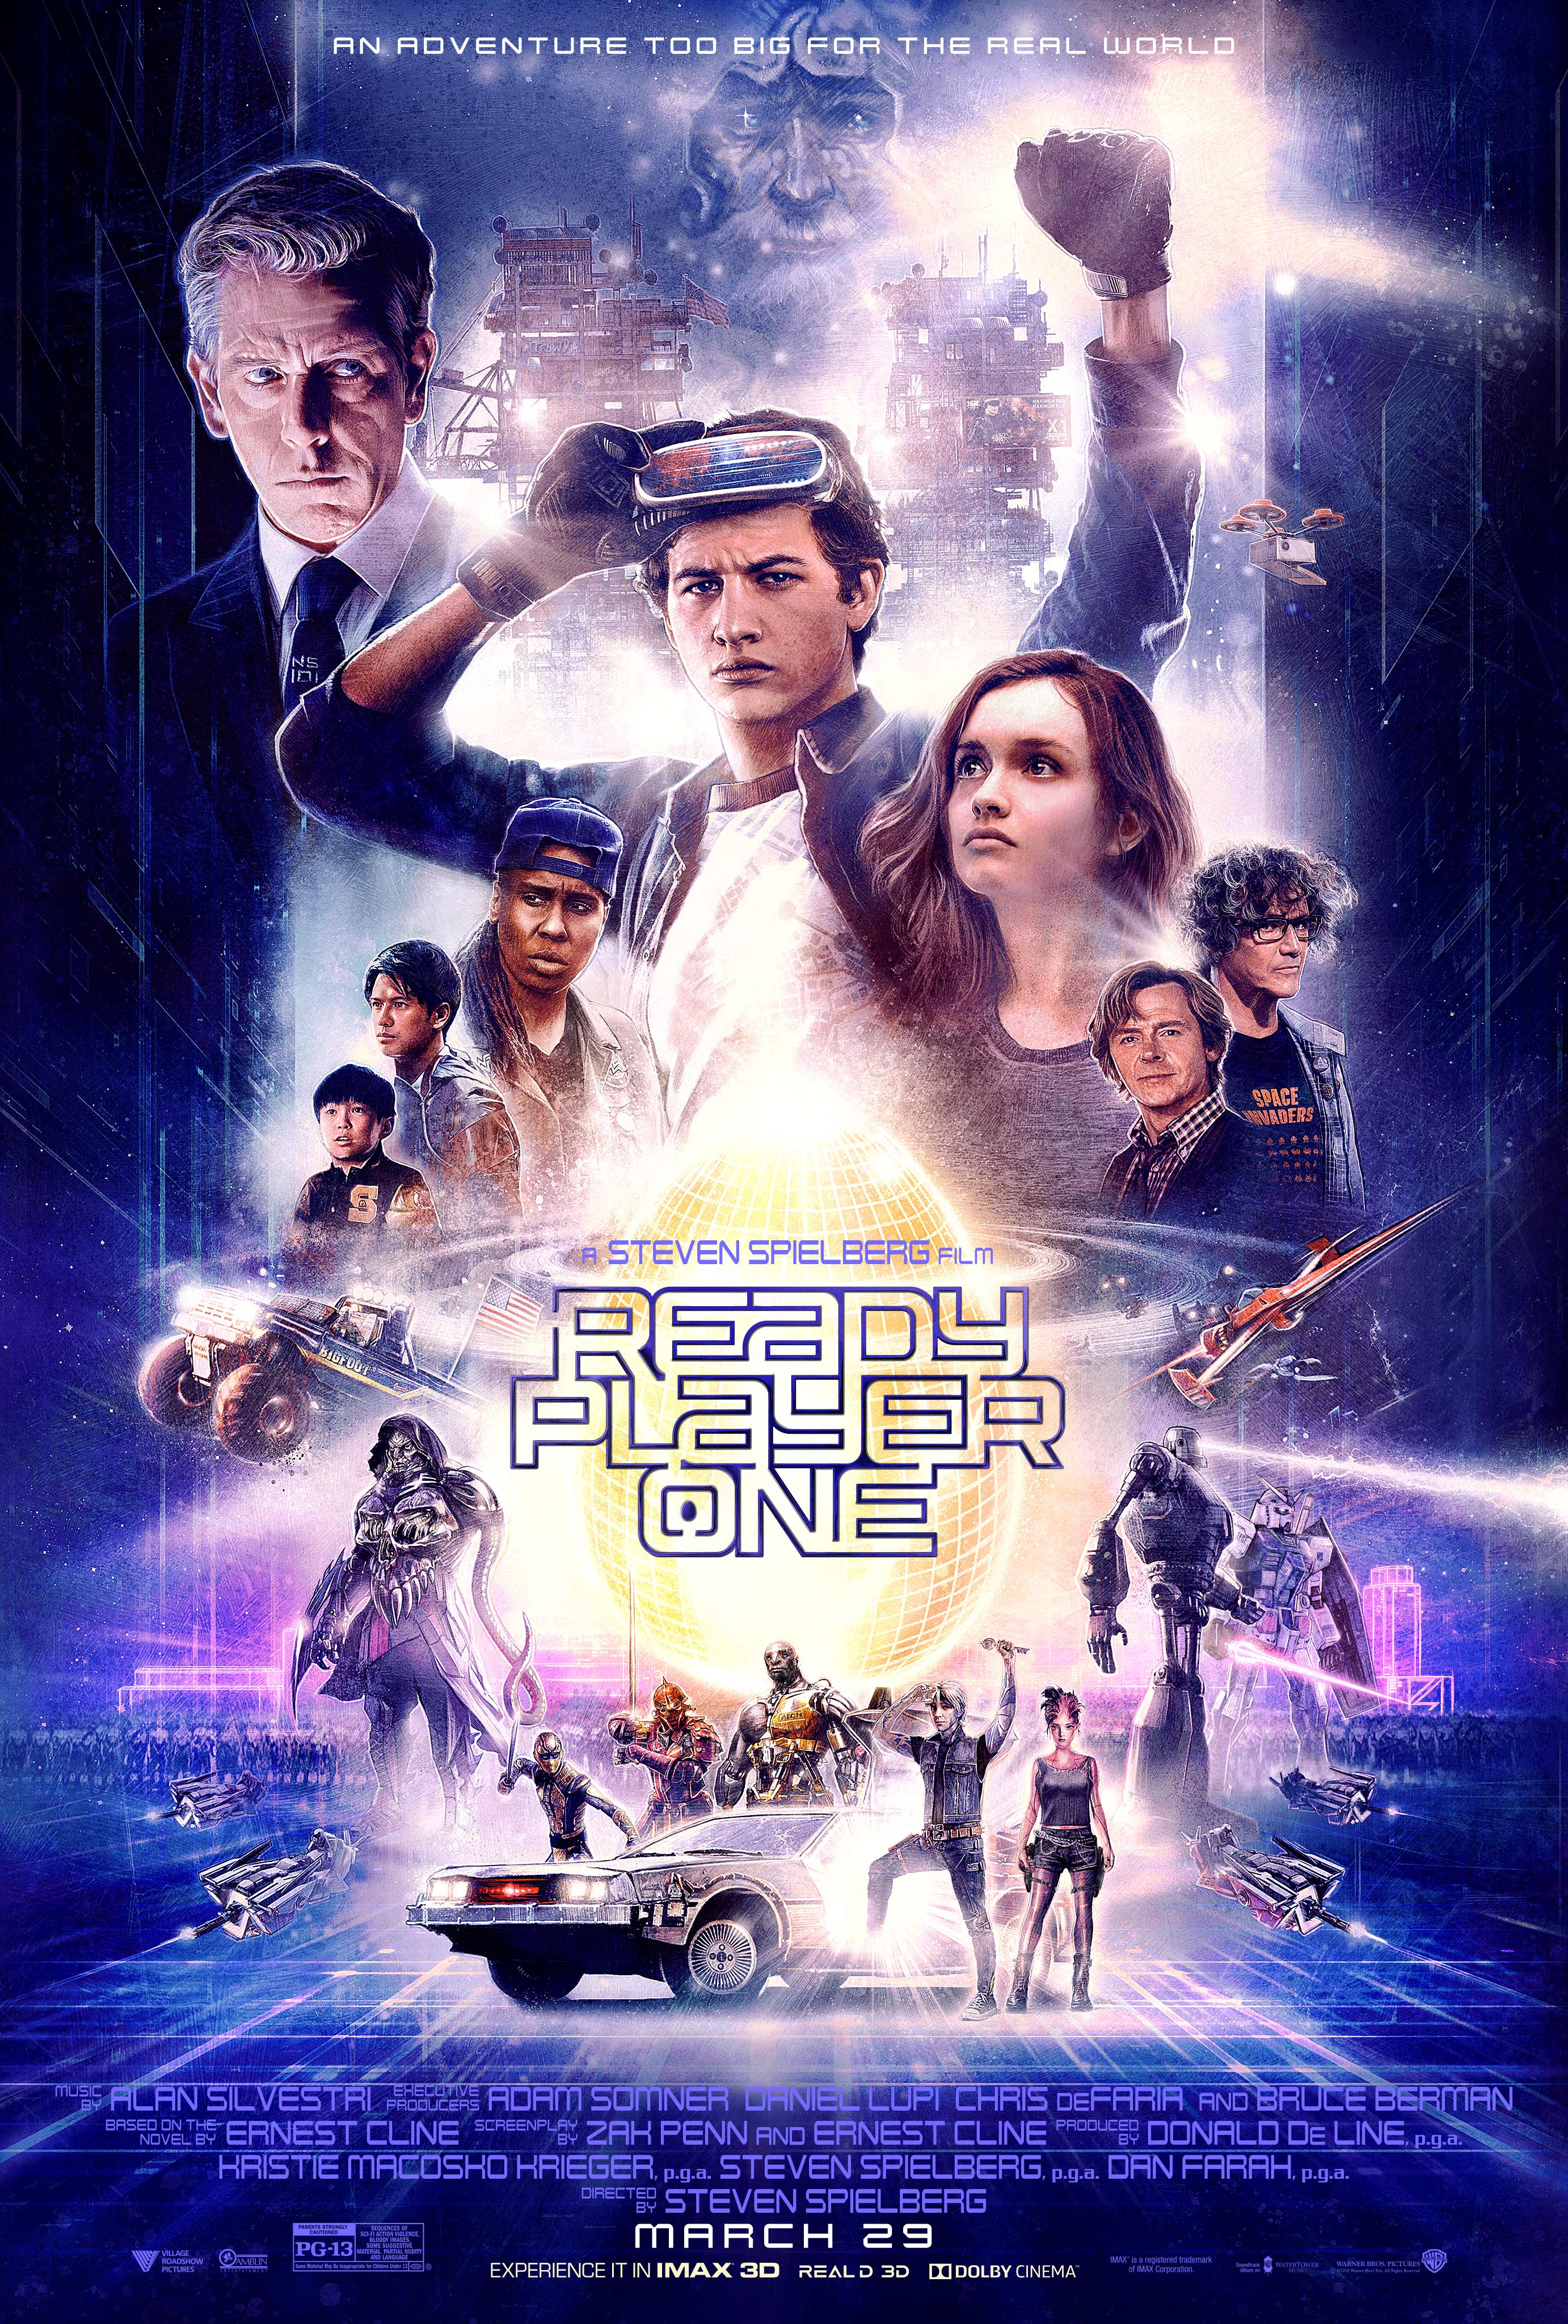 Ready Player One just started a contest!